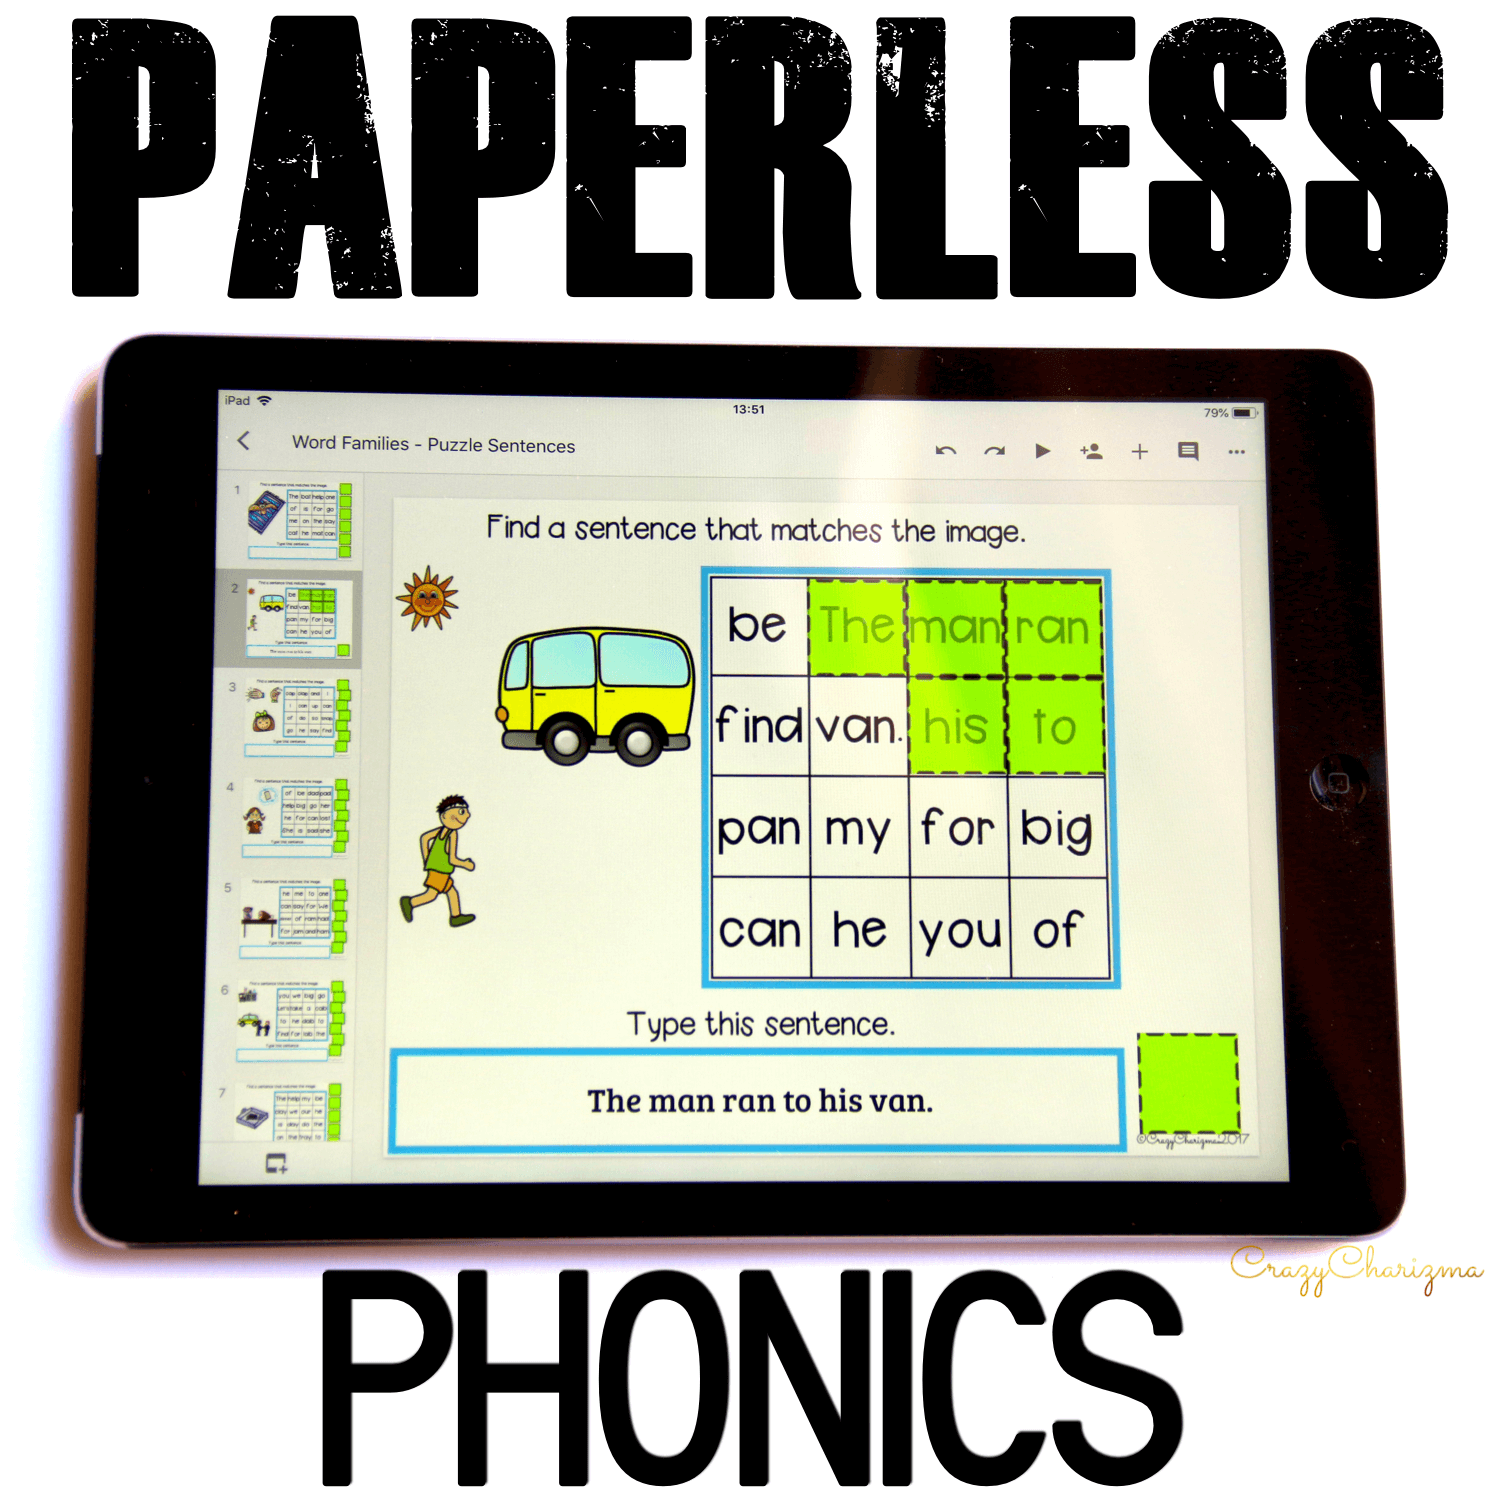 Google Classroom Activities for Kindergarten. Phonics Words Games. Get fun phonics practice! Kids will find sentences, build them and use images as visual help. Also, kids will practice typing skills. These activities are perfect for Google Classroom and Google Slides! #CrazyCharizma #GoogleClassroom #GoogleClassroomKindergarten #HandsOnActivitiesForKids #PaperlessClassroomElementary #PhonicsGames